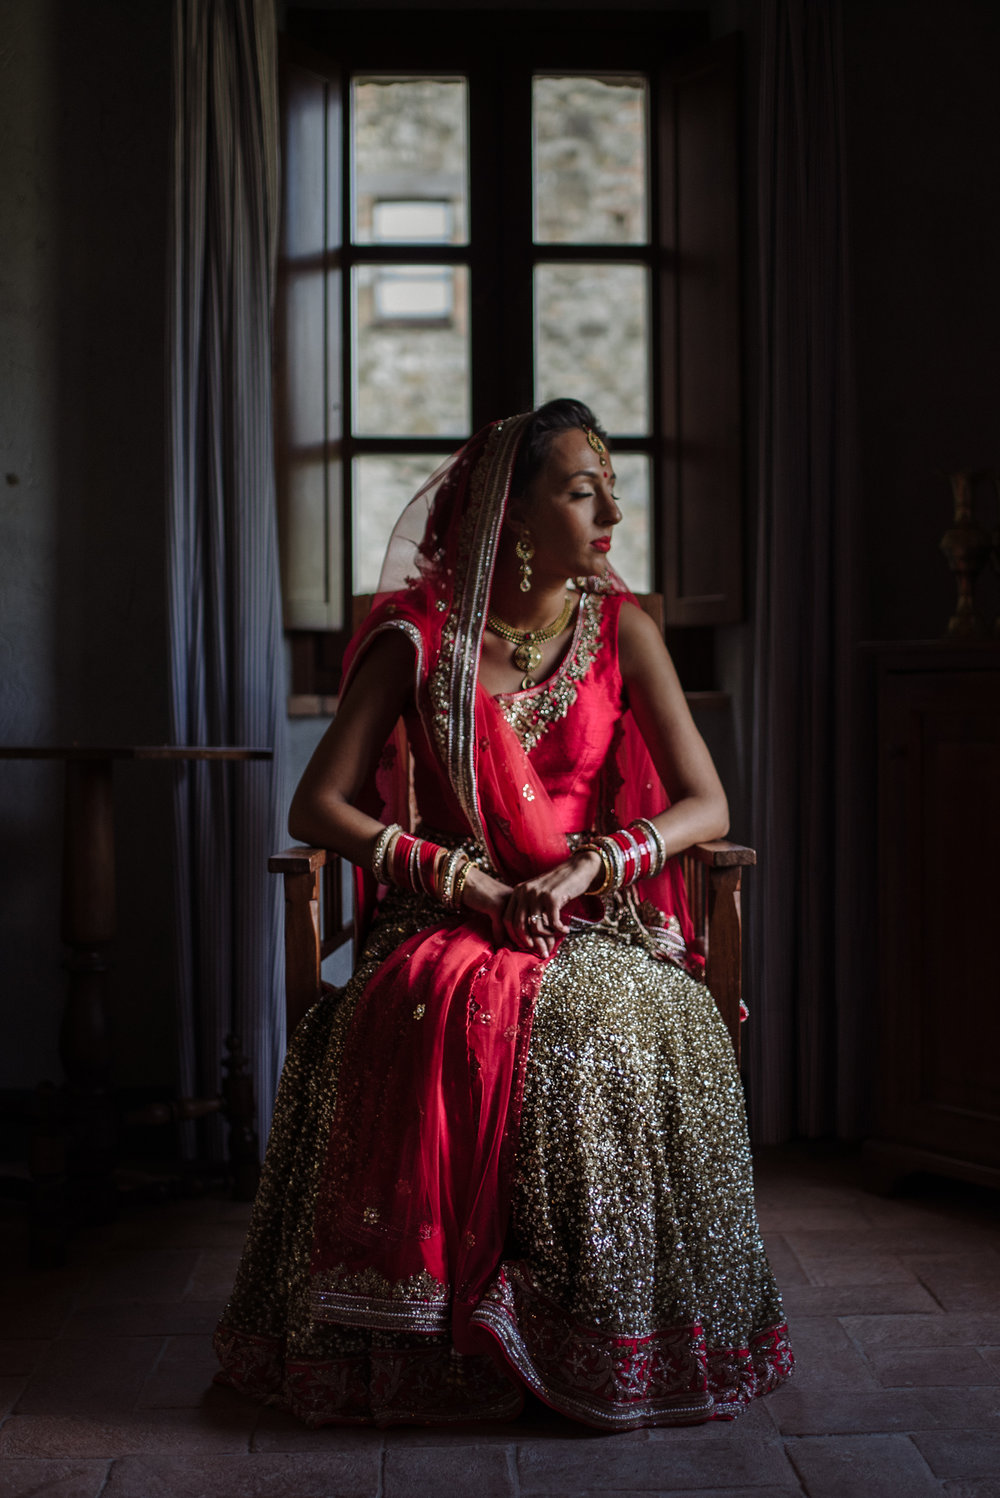 JESSY & ANTONIO  From London / Indian + Catholic Wedding in Italy